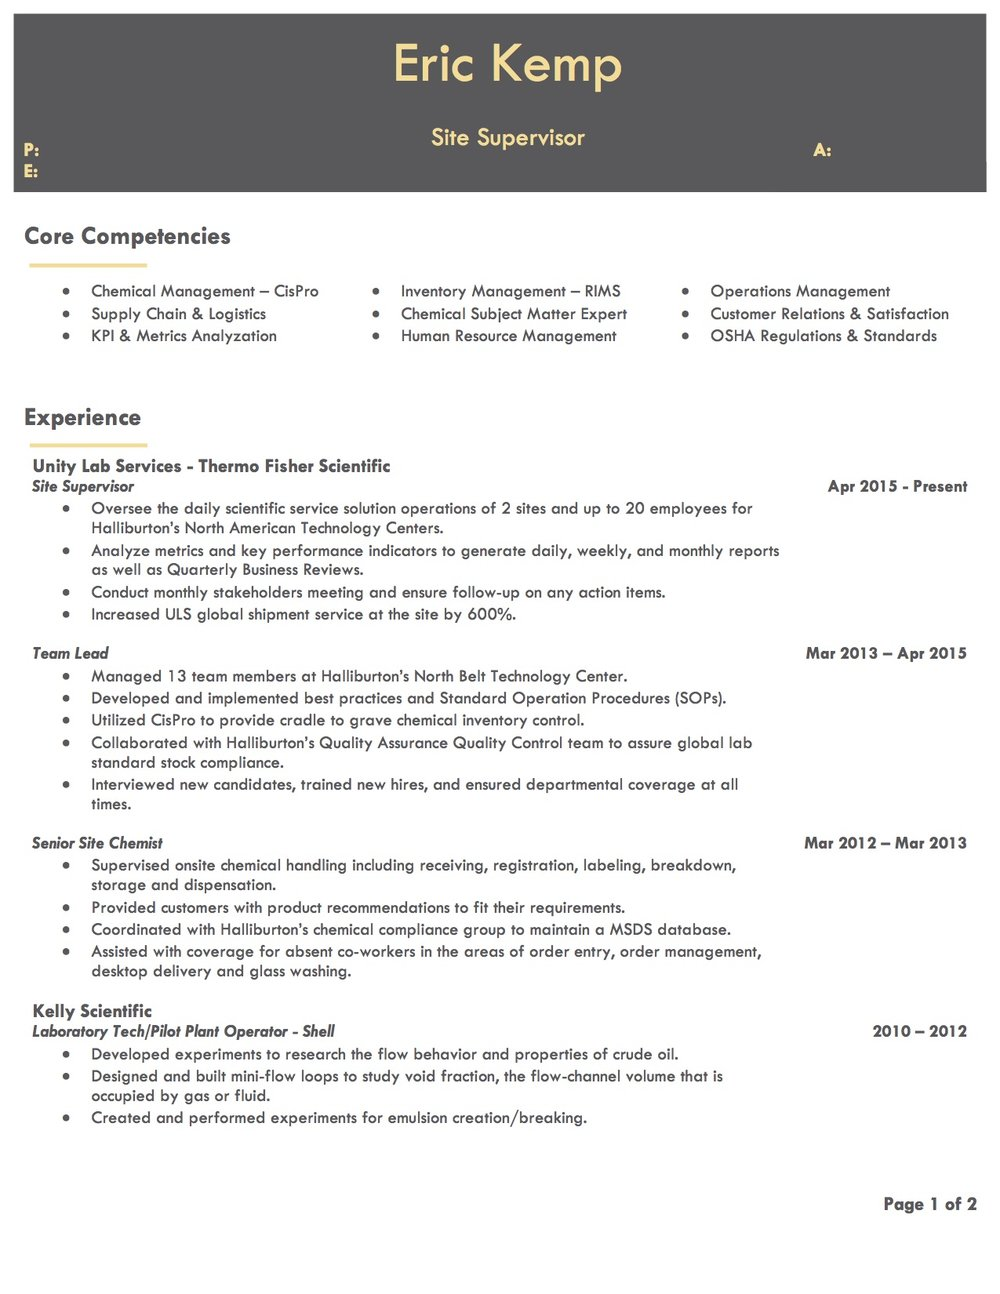 Client Resume #5 pg 1. Click to enlarge.